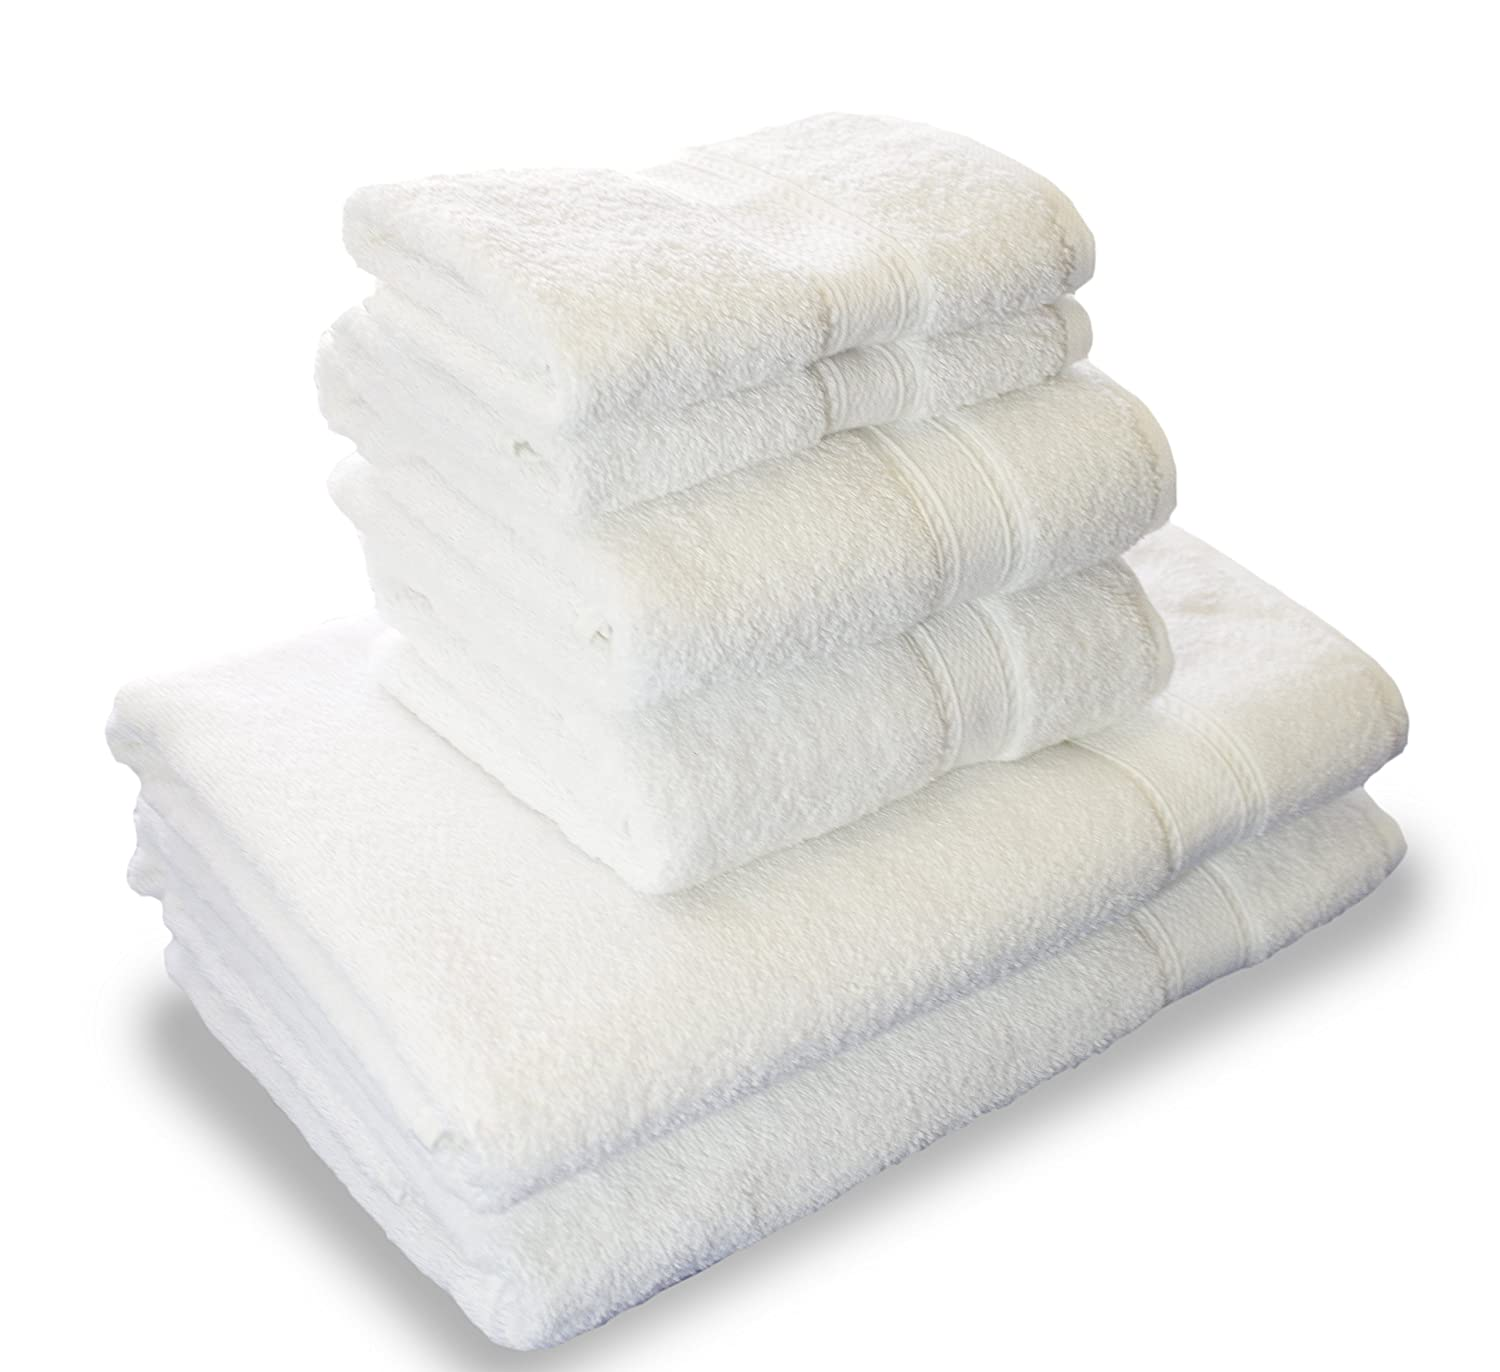 Luxury Hotel & Spa set of 6-piece Towels, 750GSM,100% Long Staple Combed Cotton. Premium set of 2 bath towels, 2 hand towels, 2 washcloths, Color (White) Mandalay Brands